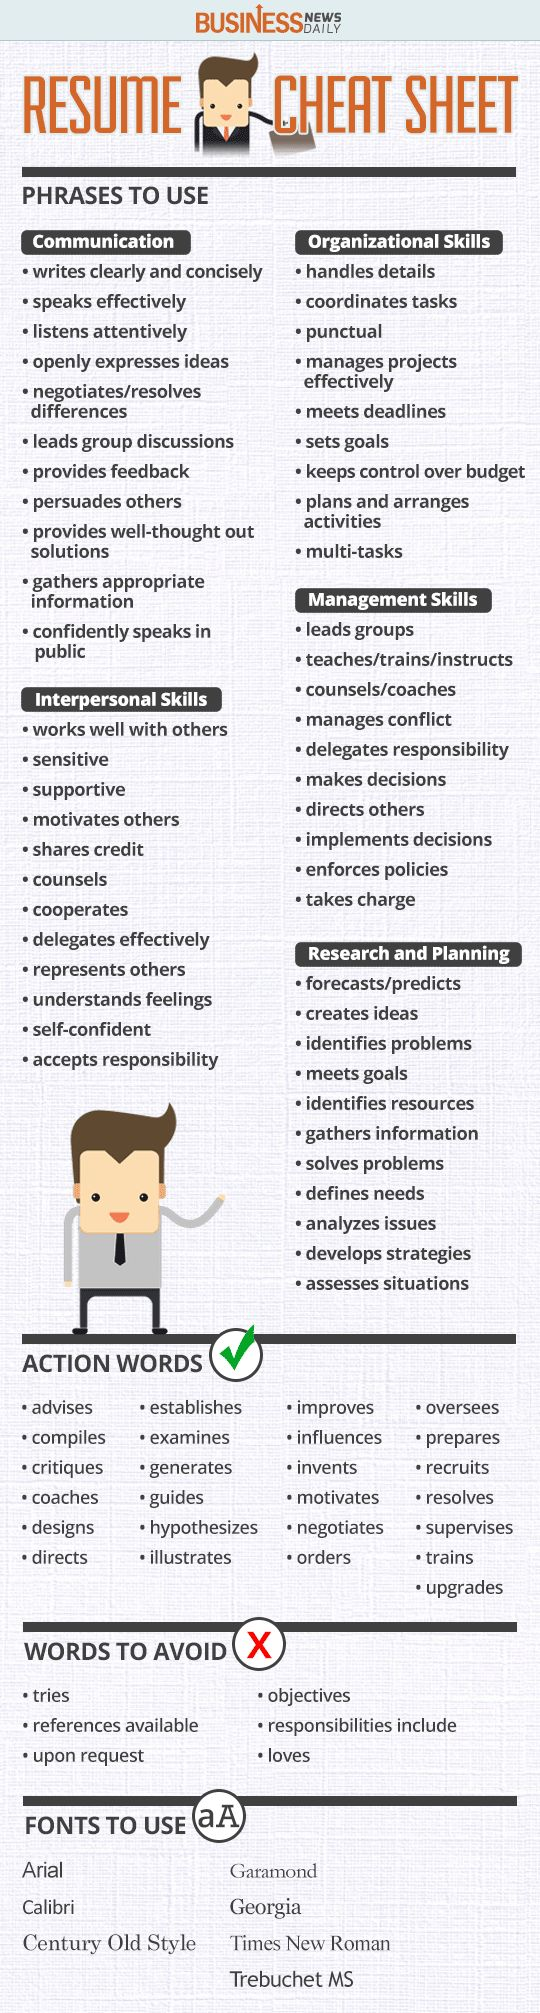 Opposenewapstandardsus  Inspiring  Ideas About Resume On Pinterest  Cv Format Resume  With Foxy Resume Cheat Sheet Infographic Andrews Almost Done With A Complete Unit On Employment Which With Breathtaking Firefighter Job Description For Resume Also Active Directory Resume In Addition Type Of Resume And Resume Financial Analyst As Well As Resume Objective Vs Summary Additionally Leonardo Da Vinci Resume From Pinterestcom With Opposenewapstandardsus  Foxy  Ideas About Resume On Pinterest  Cv Format Resume  With Breathtaking Resume Cheat Sheet Infographic Andrews Almost Done With A Complete Unit On Employment Which And Inspiring Firefighter Job Description For Resume Also Active Directory Resume In Addition Type Of Resume From Pinterestcom